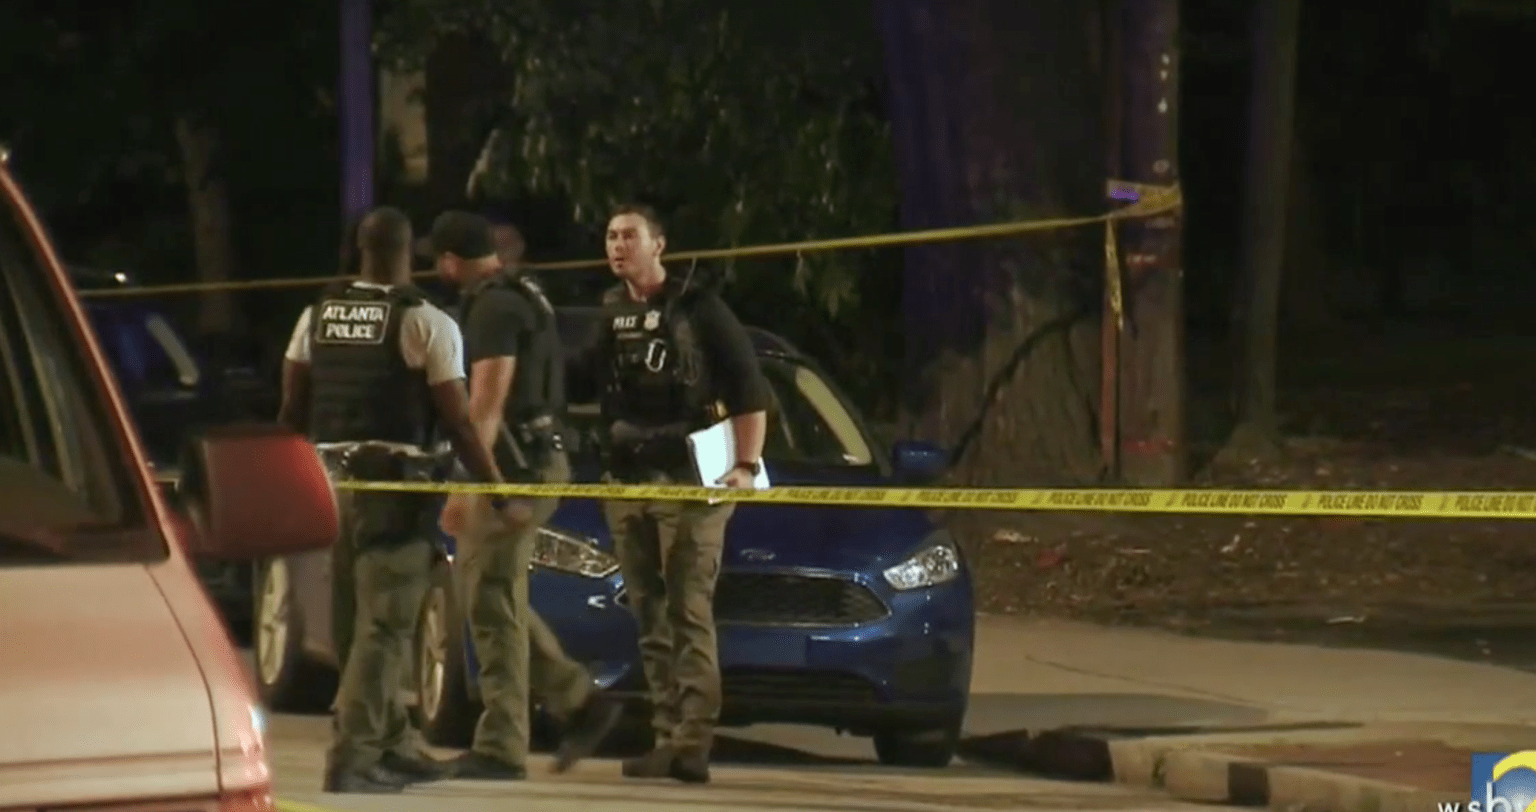 Nine-year-old child, two others hospitalized after shooting in Atlanta - where's the outrage?